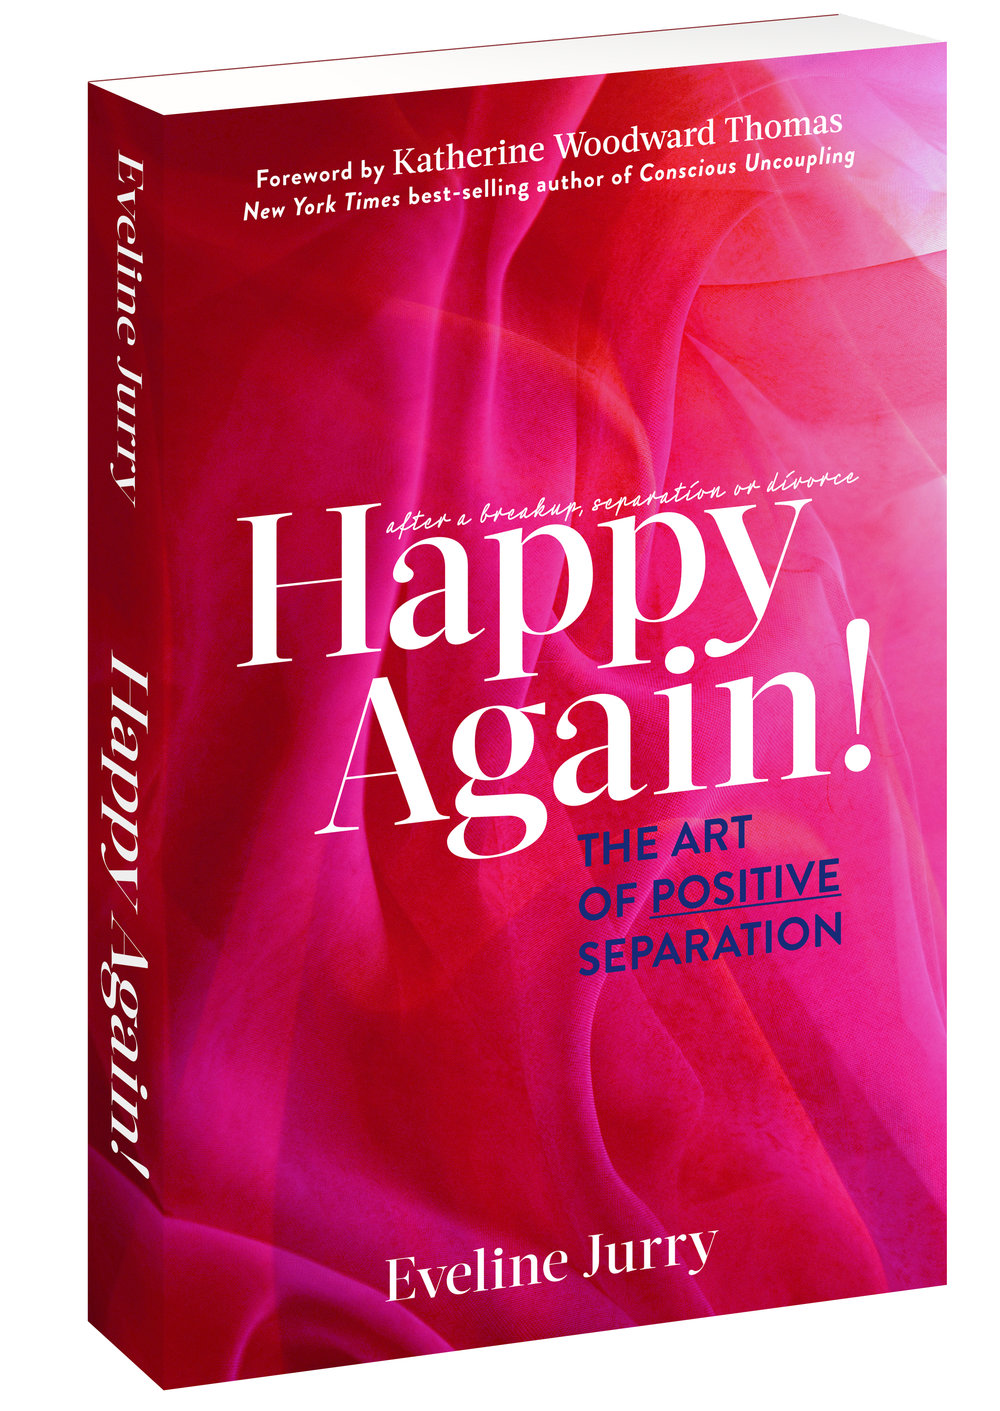 Happy Again Cover Eveline Jurry.jpg